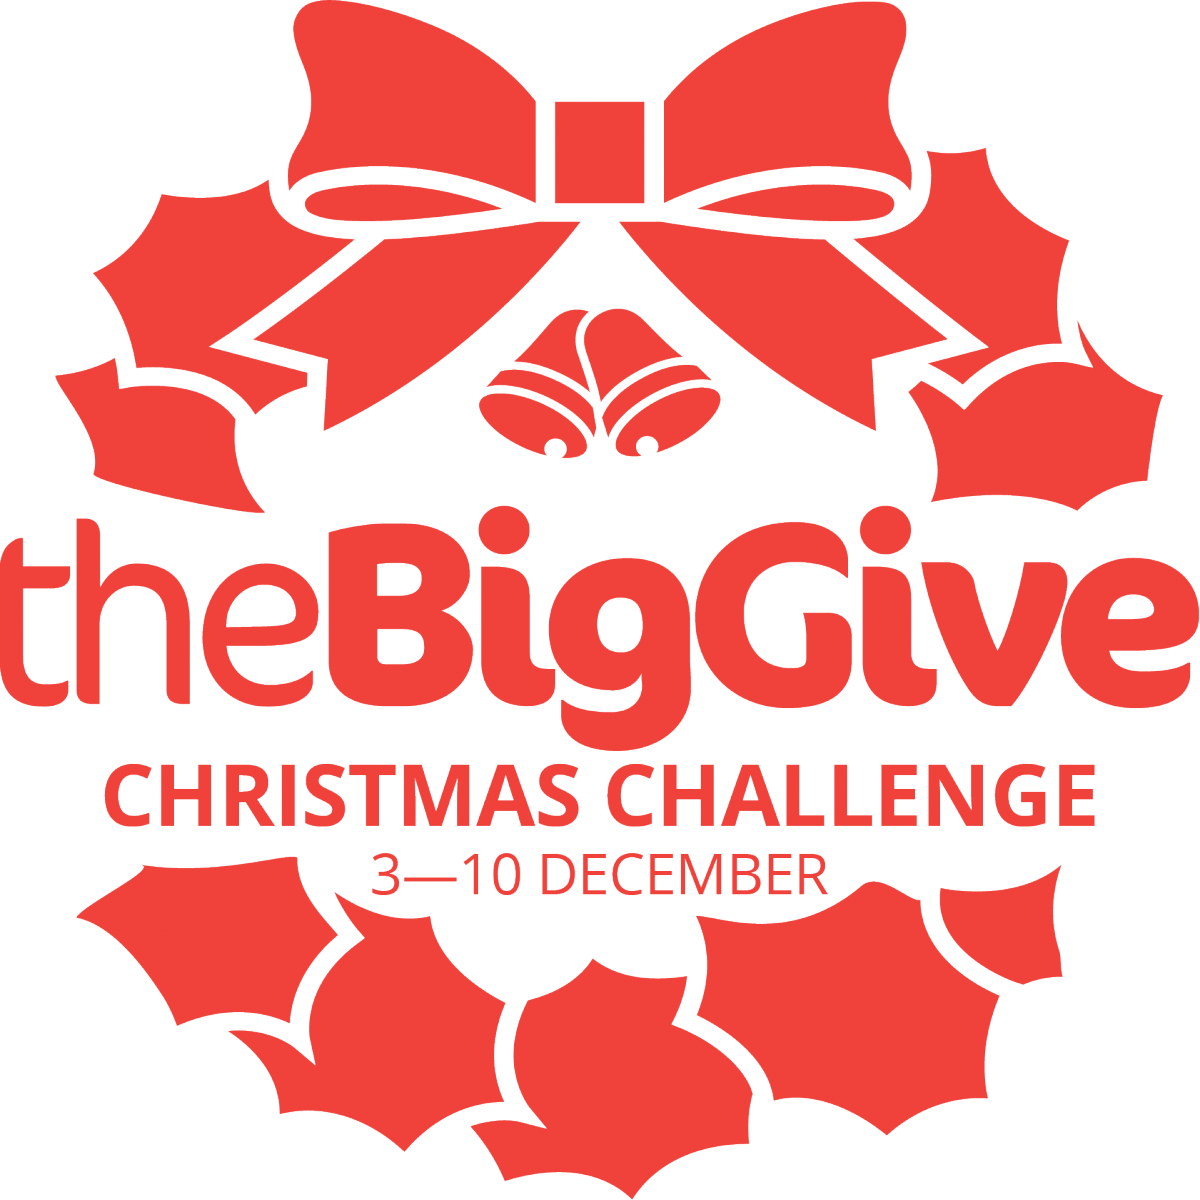 The Big Give Christmas Challenge!